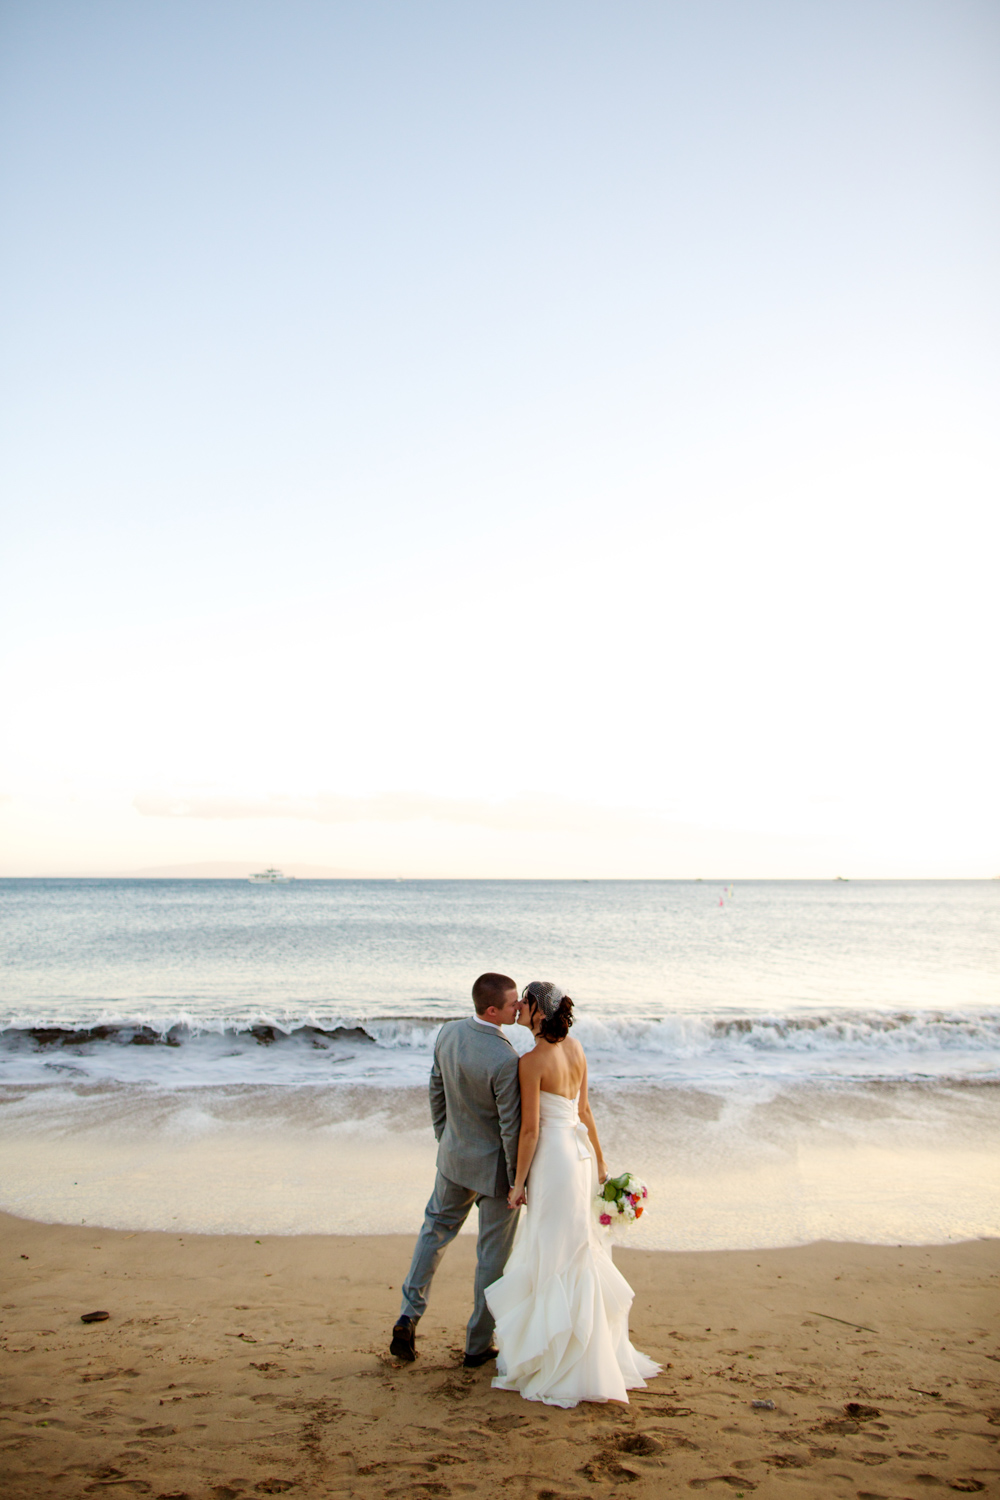 bliss-maui-wedding-sugar-beach-events-anna-kim-photography-katelyn-eric-28.jpg